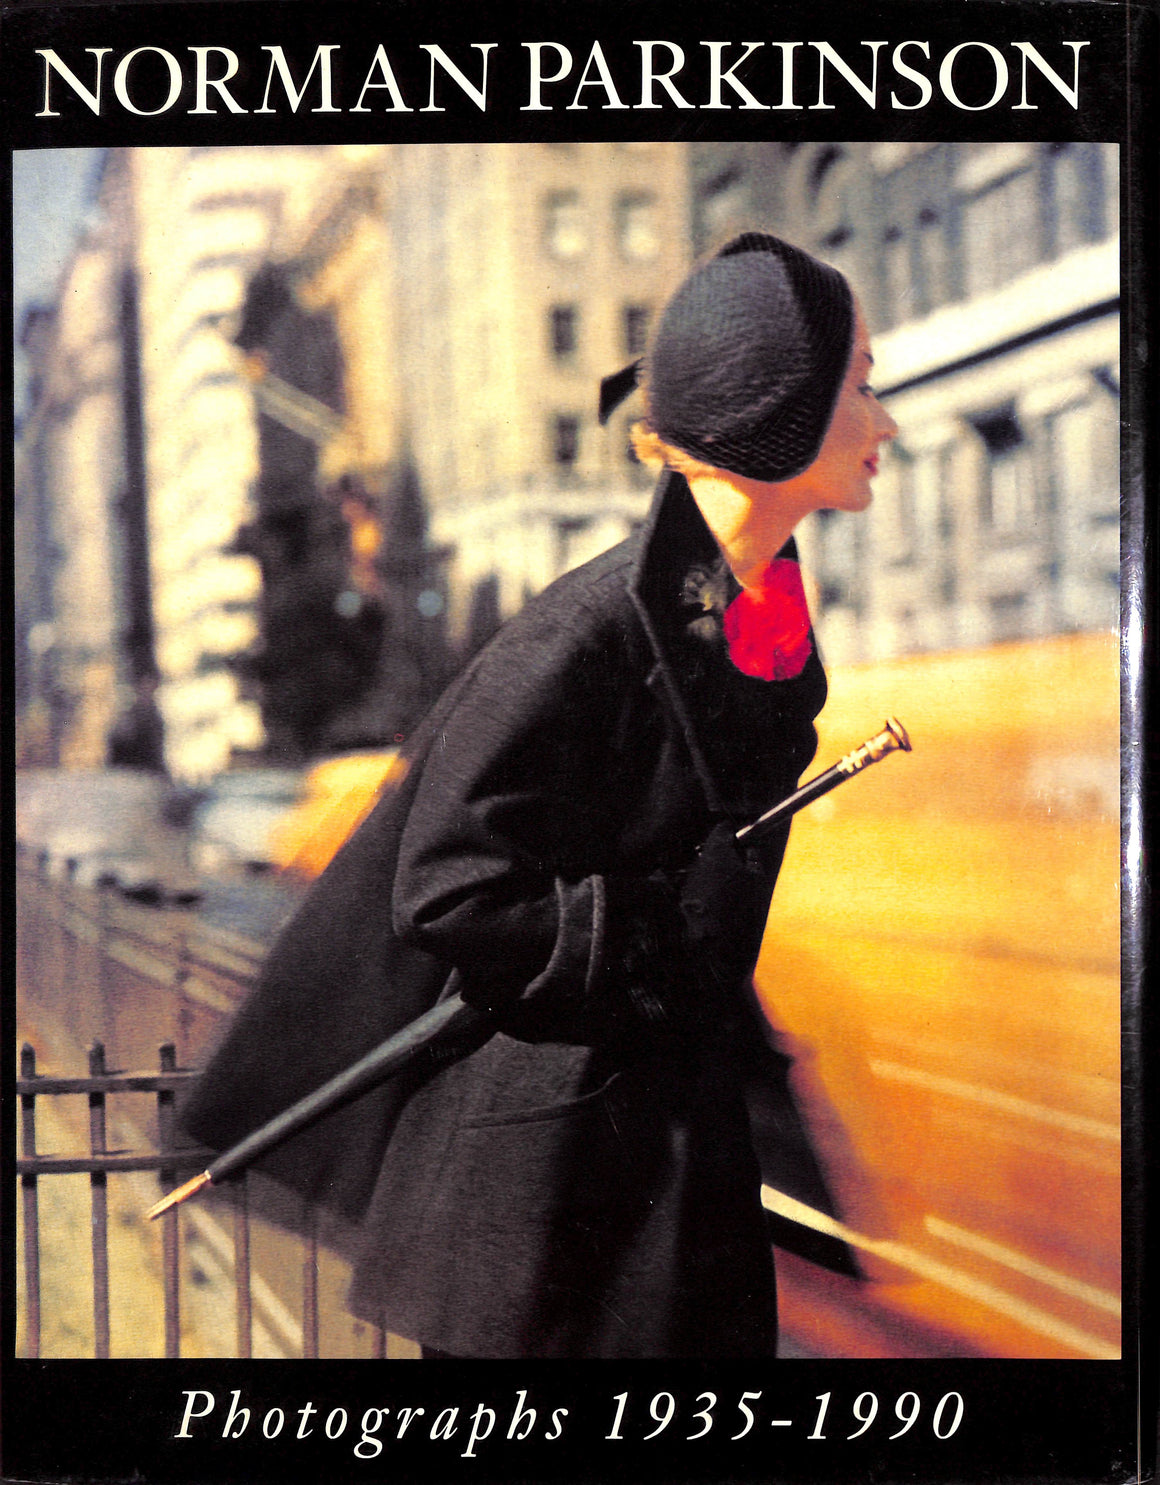 Norman Parkinson: Photographs 1935-1990 by Martin Harrison